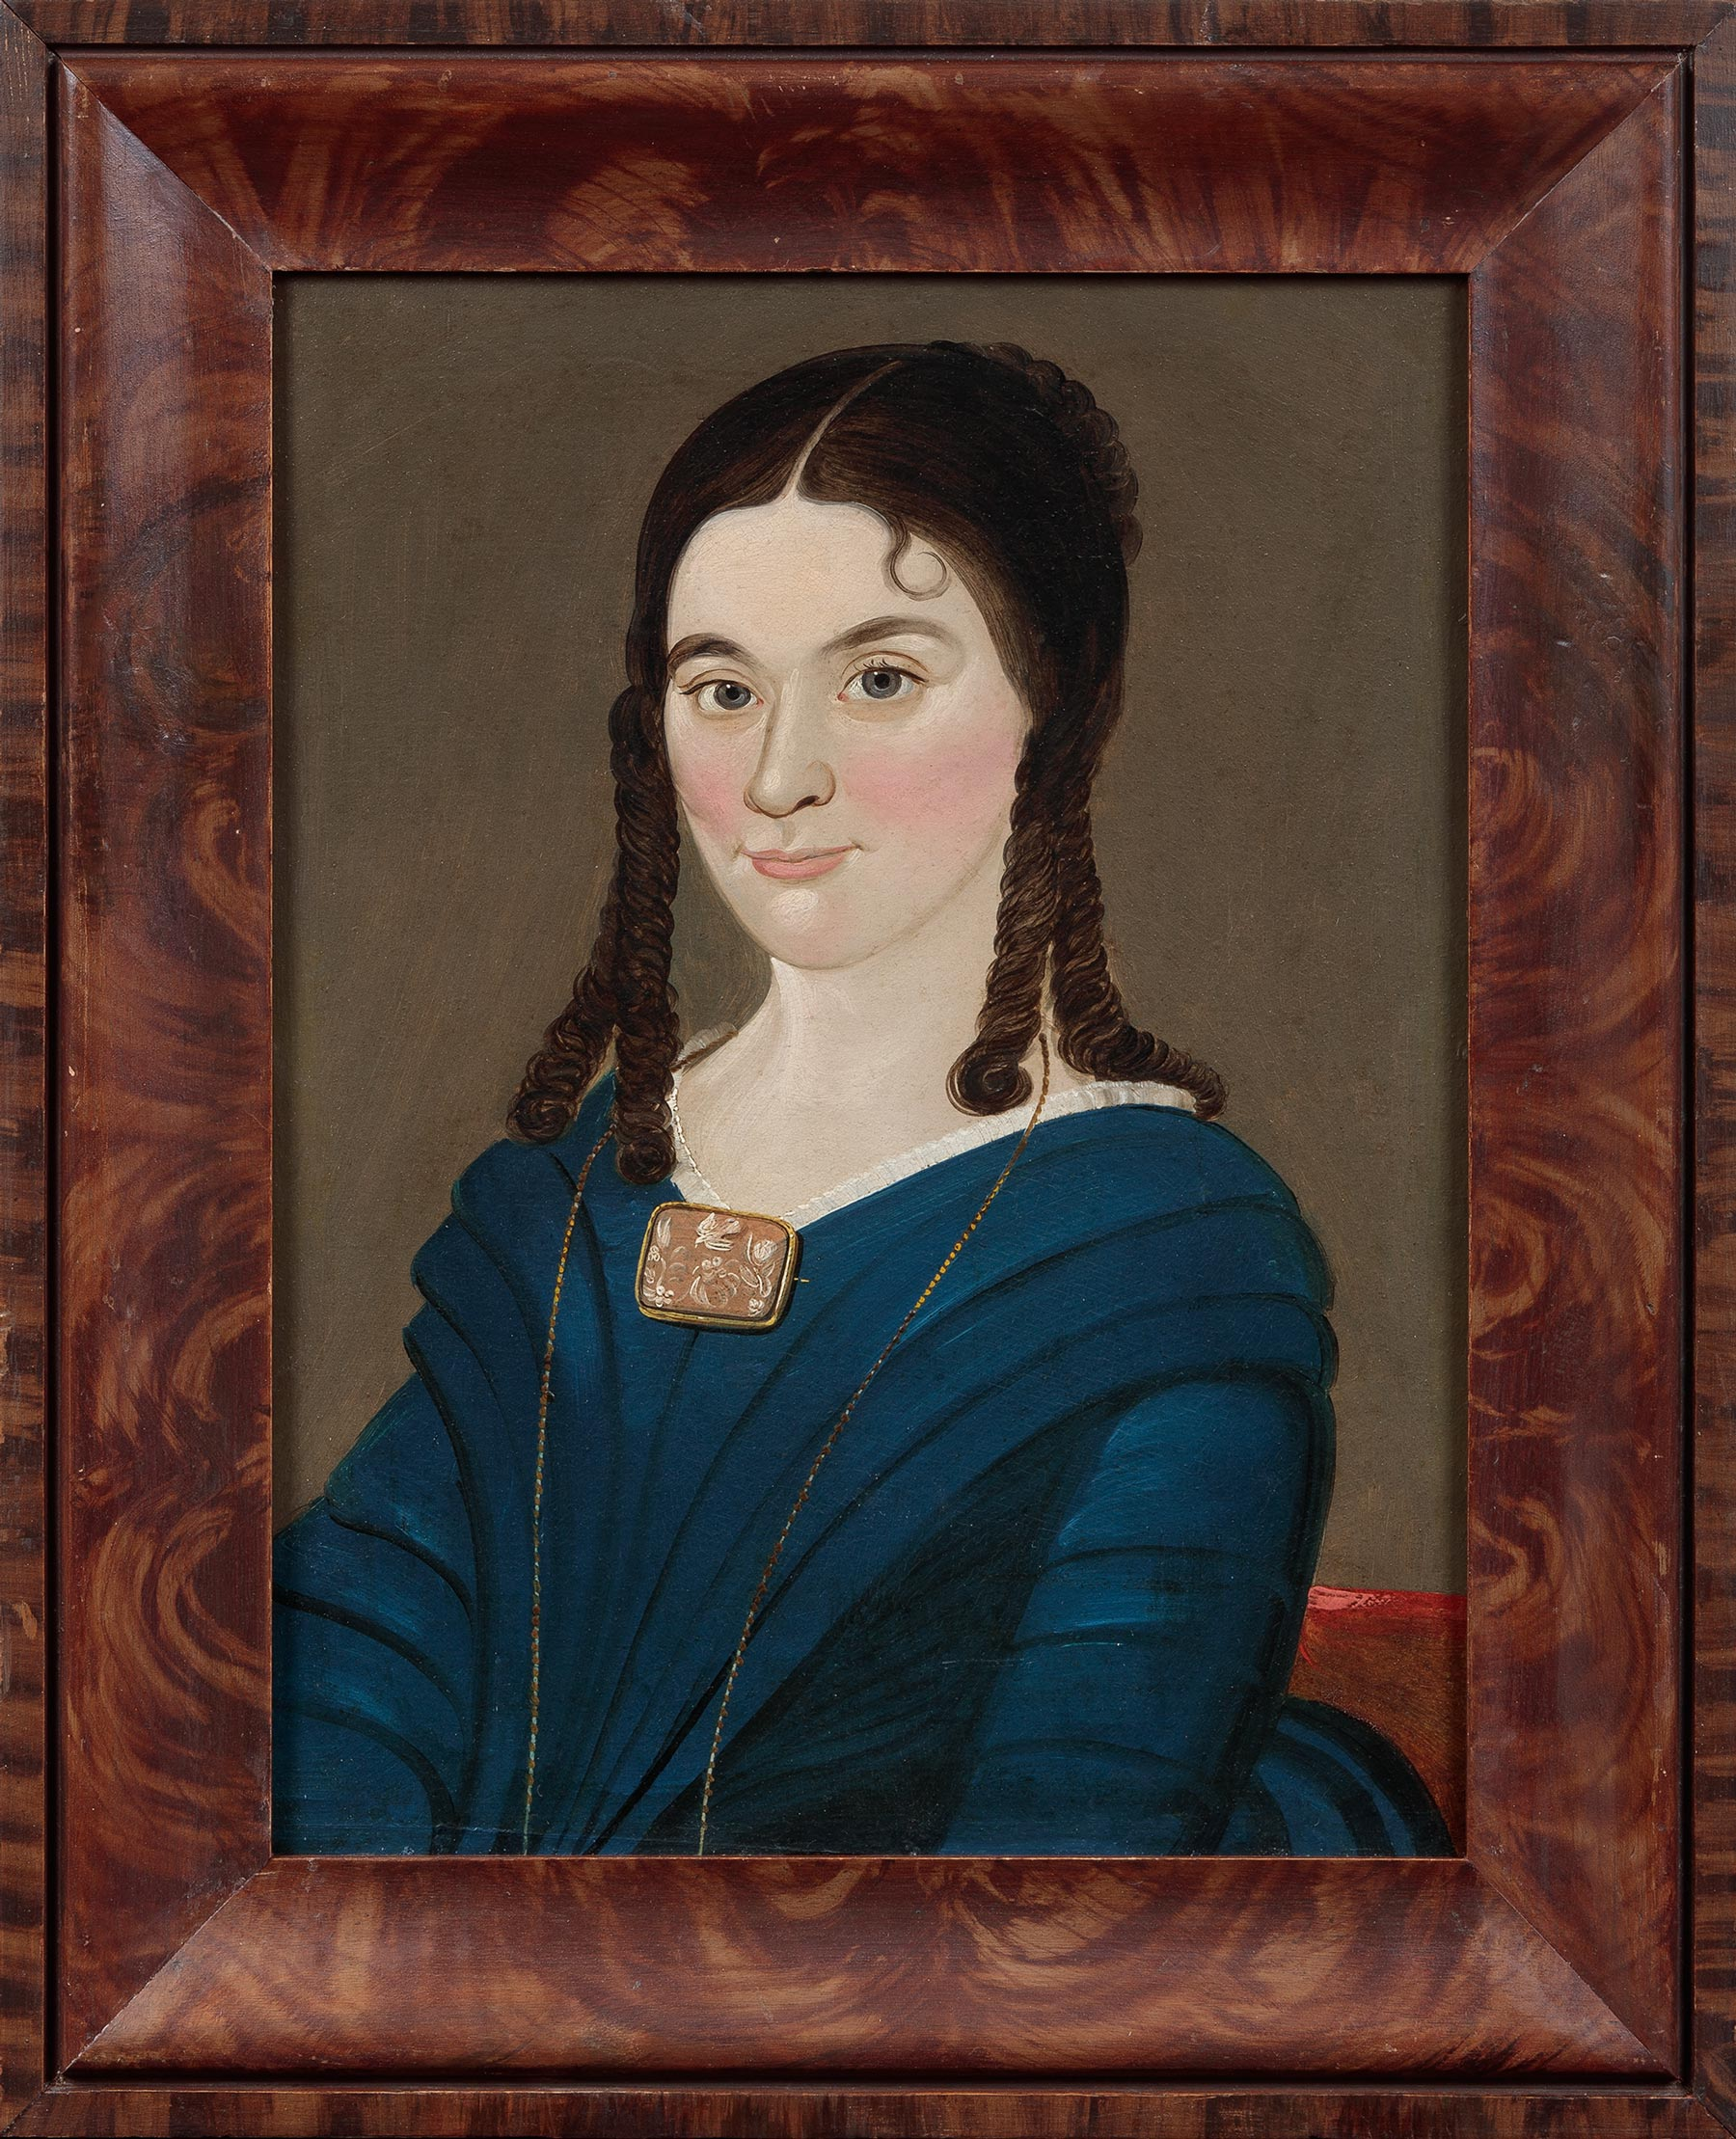 William Matthew Prior (American, 1806-1873), Portrait of a Young Woman with Cameo Brooch, New England, ca. 1835. Oil on canvas. Photograph courtesy David A. Schorsch and Eileen M. Smiles, Woodbury, Connecticut.